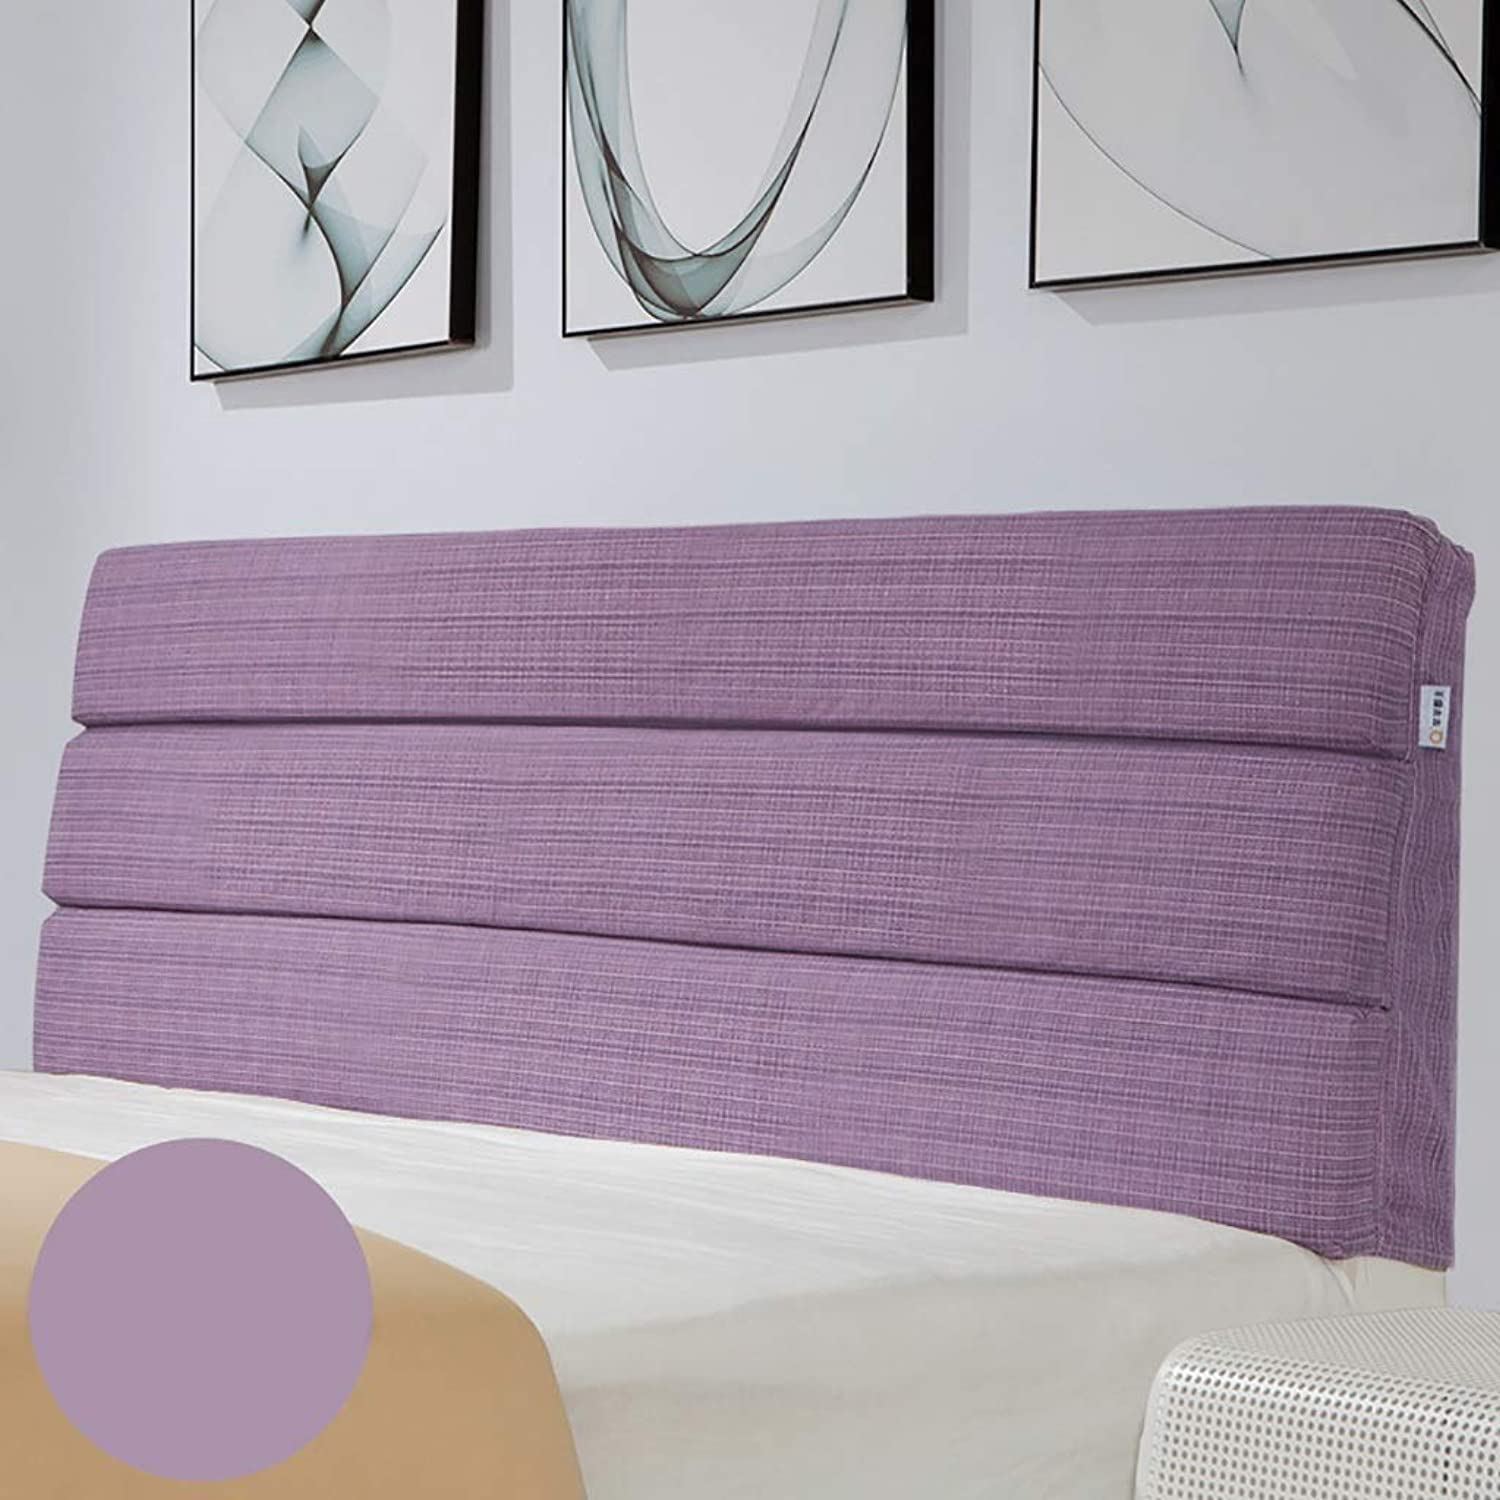 Large Soft Upholstered Headboard Cushion Wall Pillow Linen Fabric Lumbar Pad Bed Backrest Breathable Removable Washable (color   B, Size   180CM)